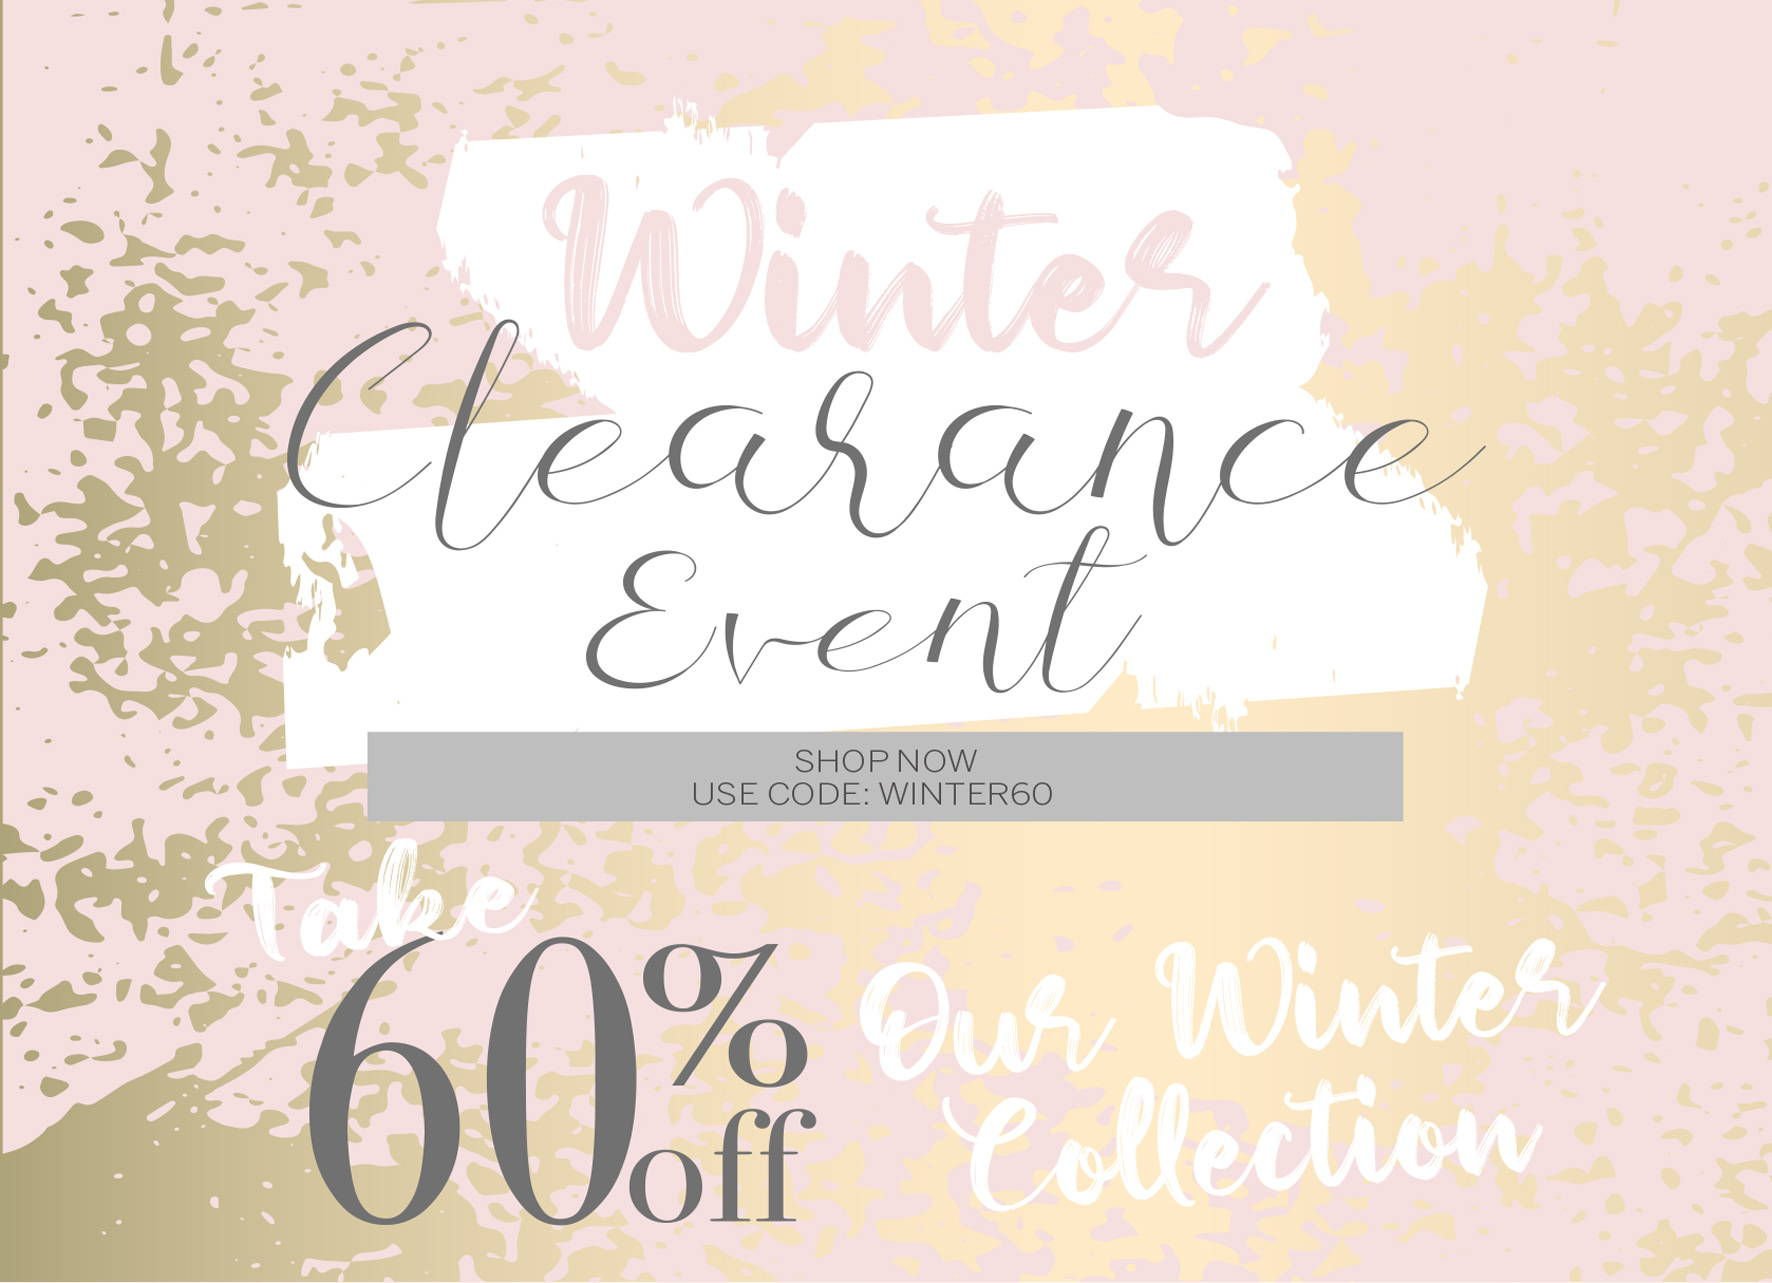 Winter clearance sale, bella ella online boutique clothing